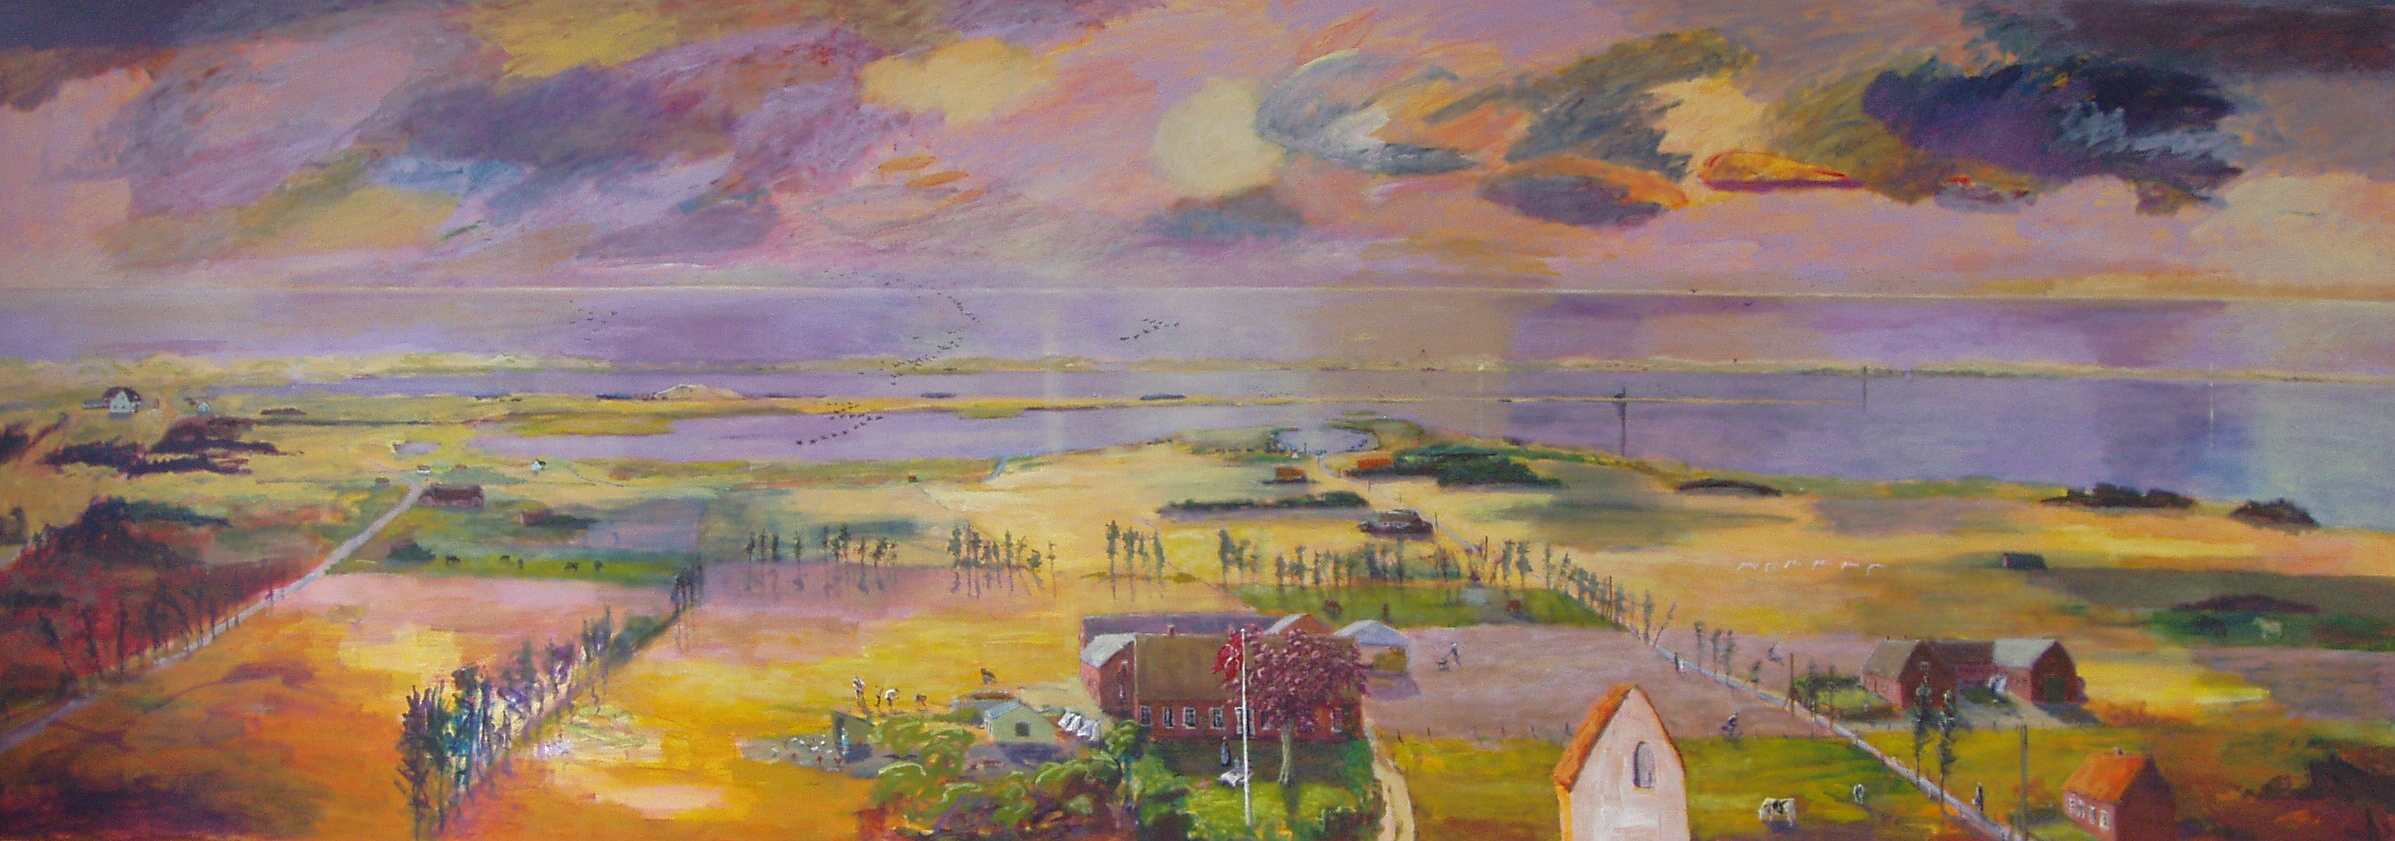 The Land Behind The Sea, wall painting 750 x 300